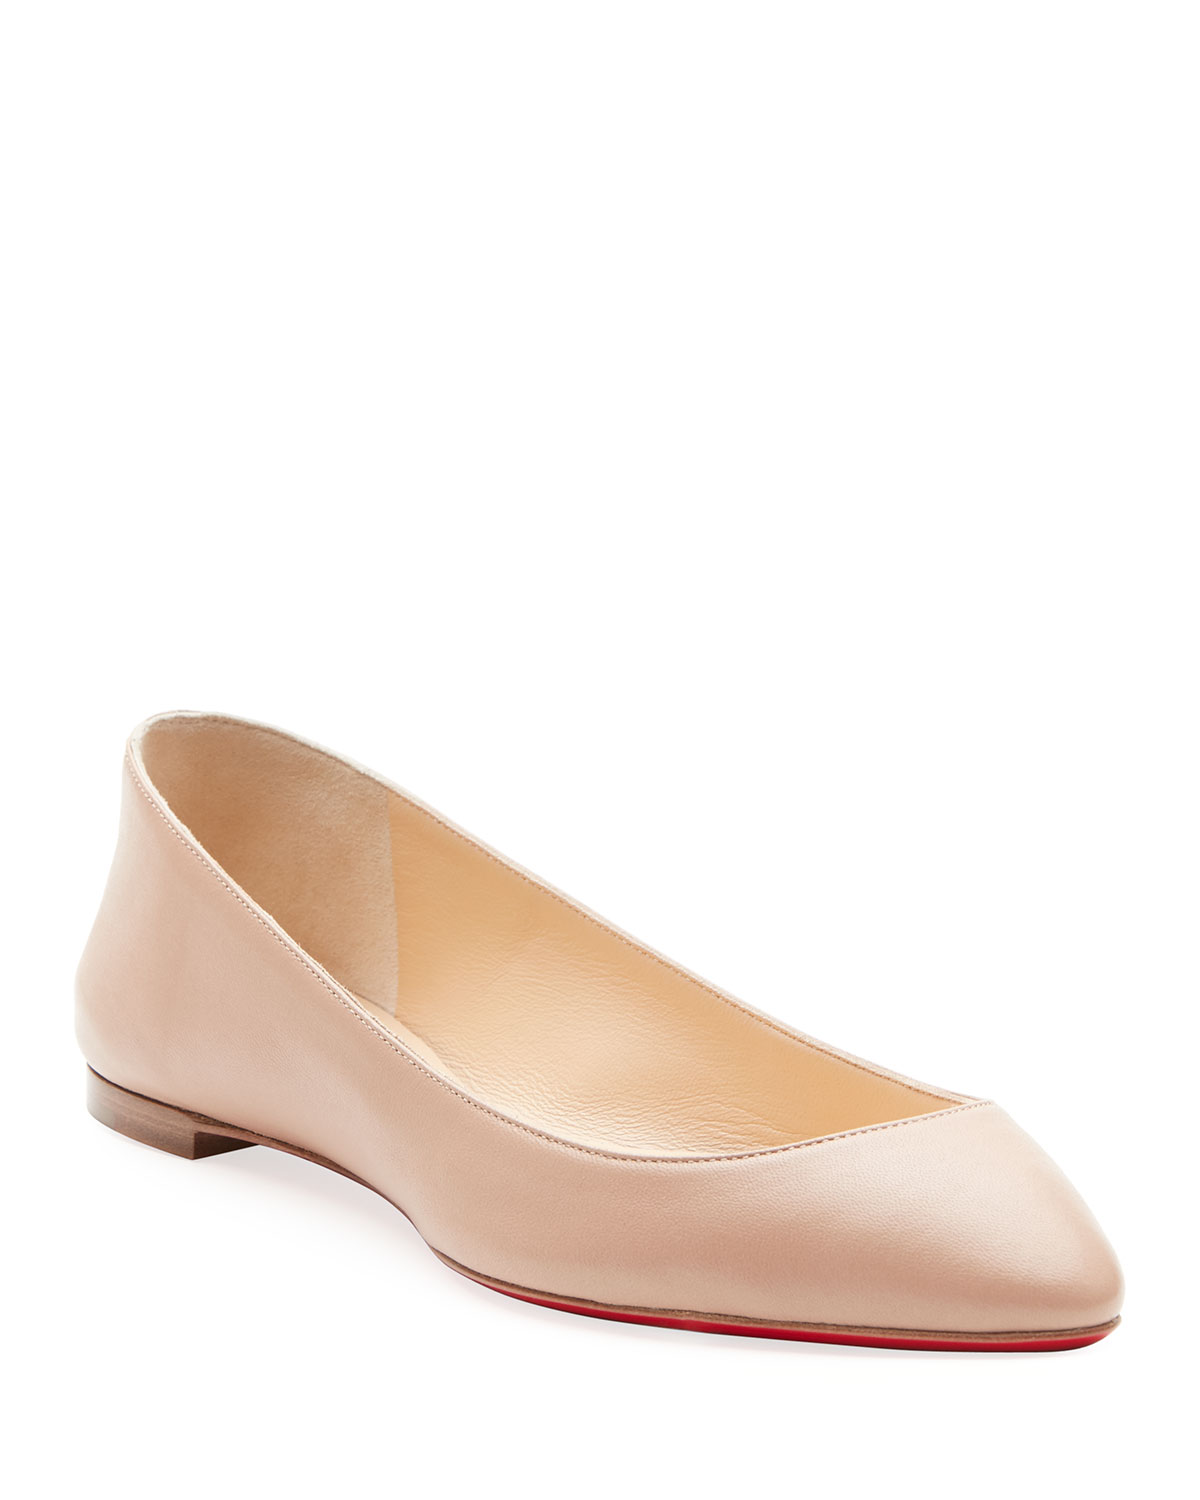 4b04654678b Christian Louboutin Eloise Napa Leather Red Sole Flat